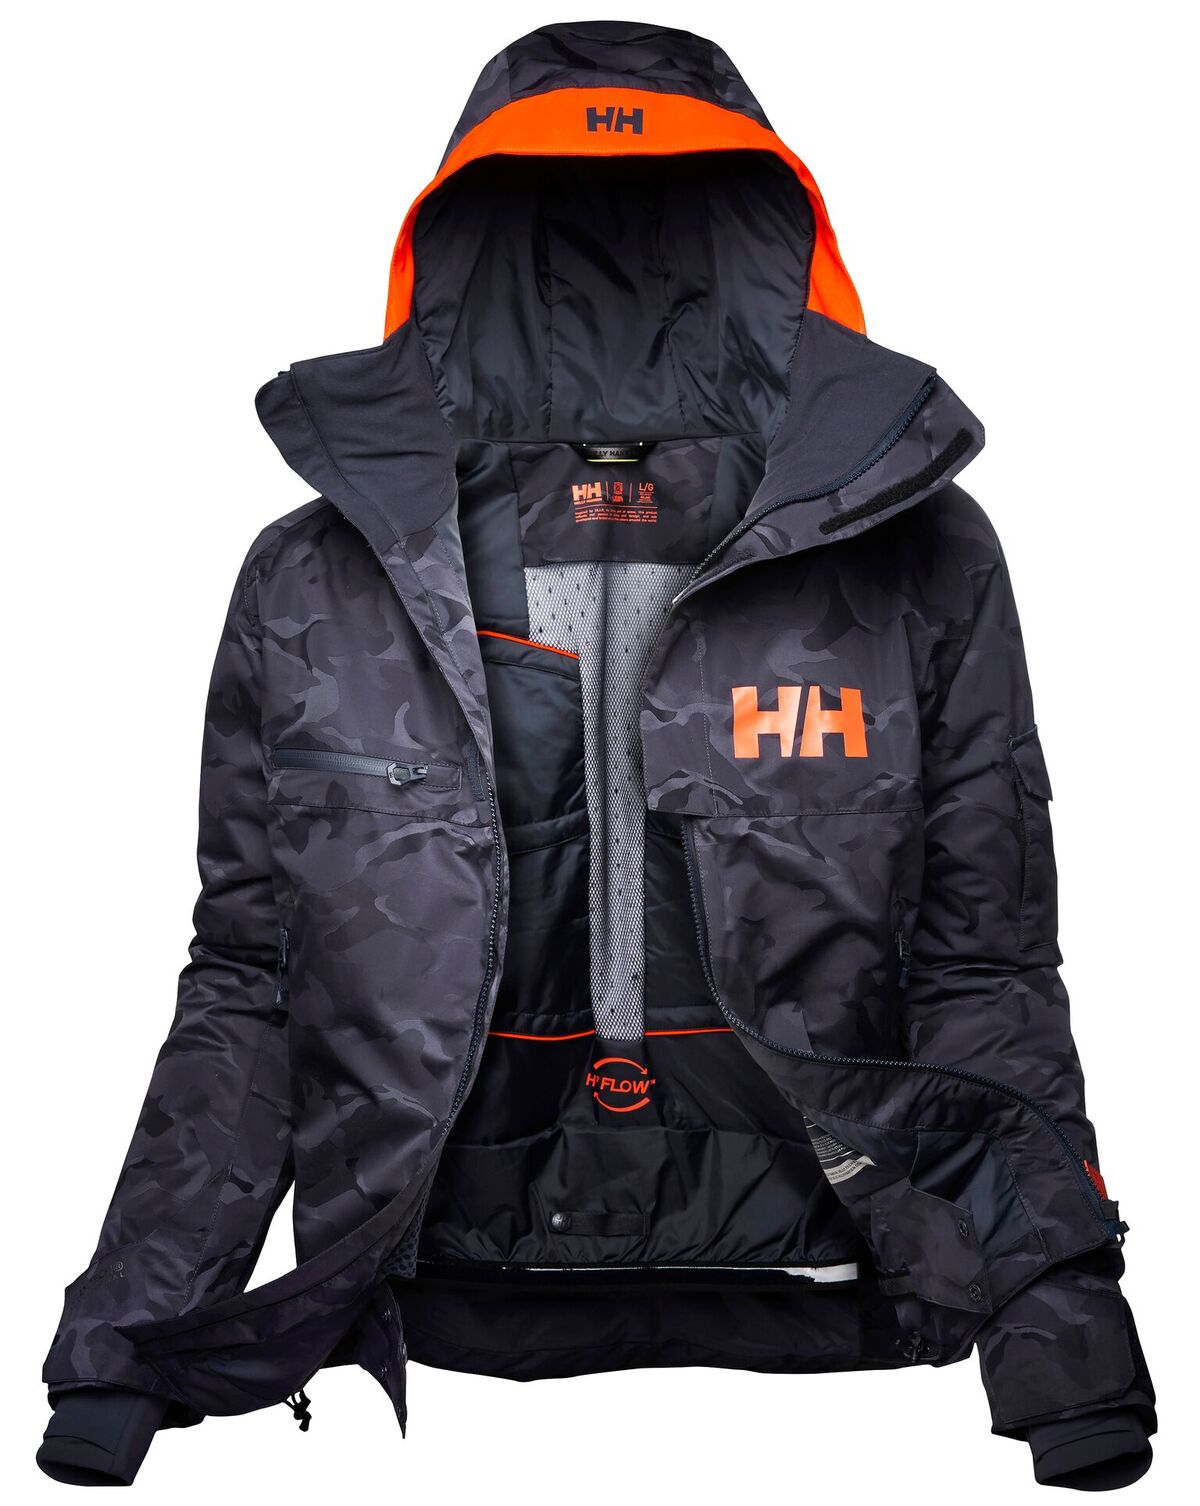 Helly Hansen. Garibaldi, W Powderqueen 2.0 y JR Skyhigh Jackets